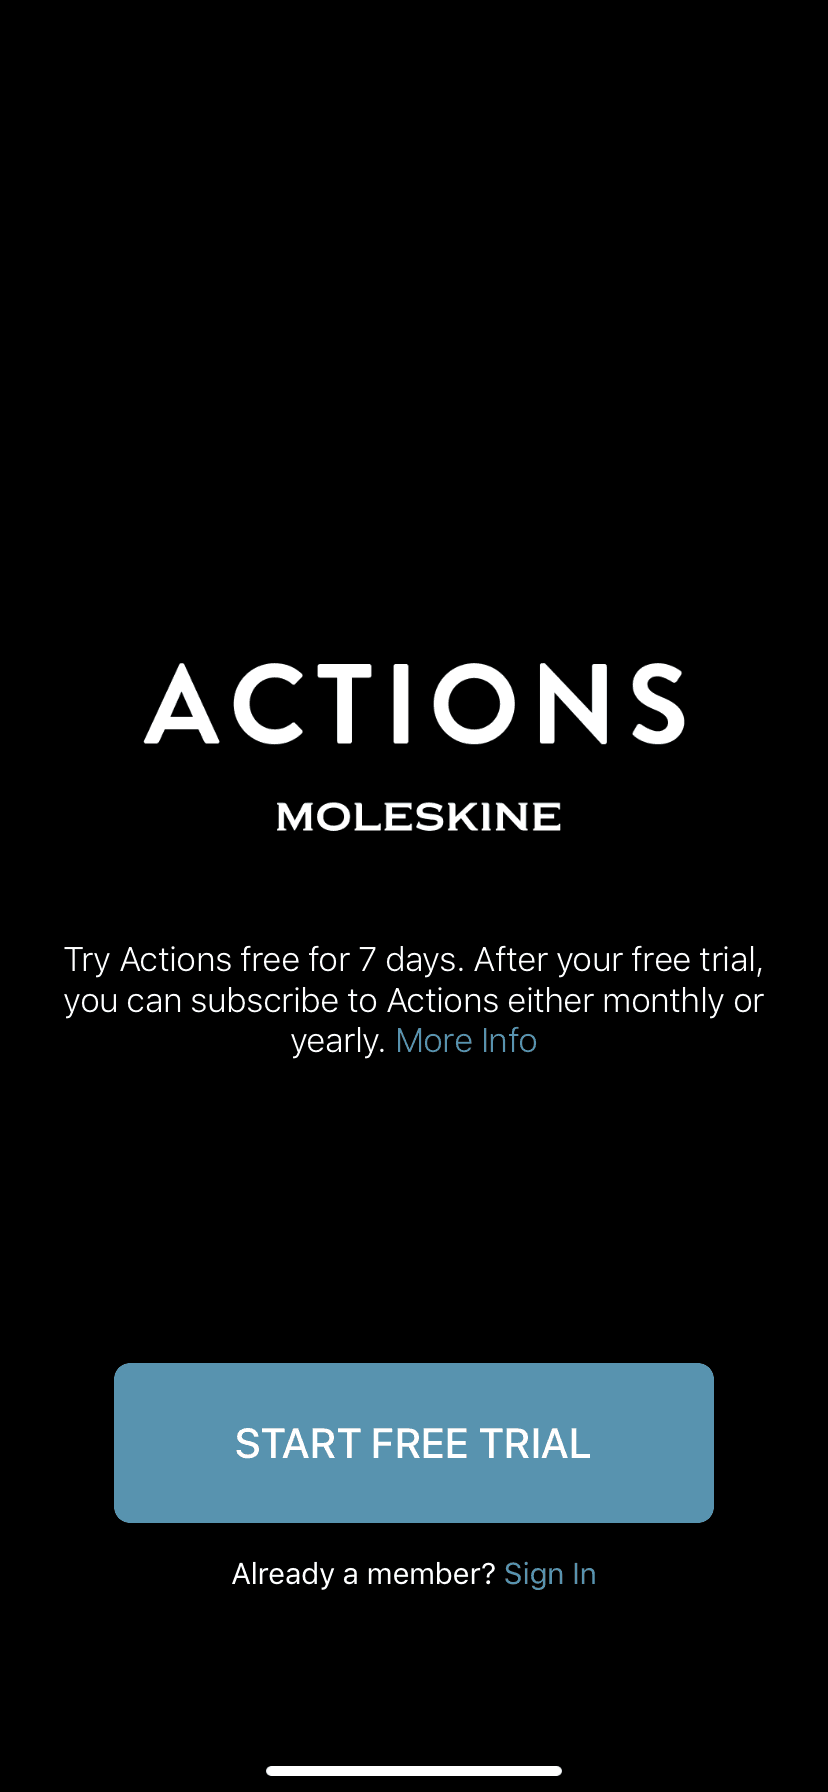 Start Free Trial on iOS by Actions